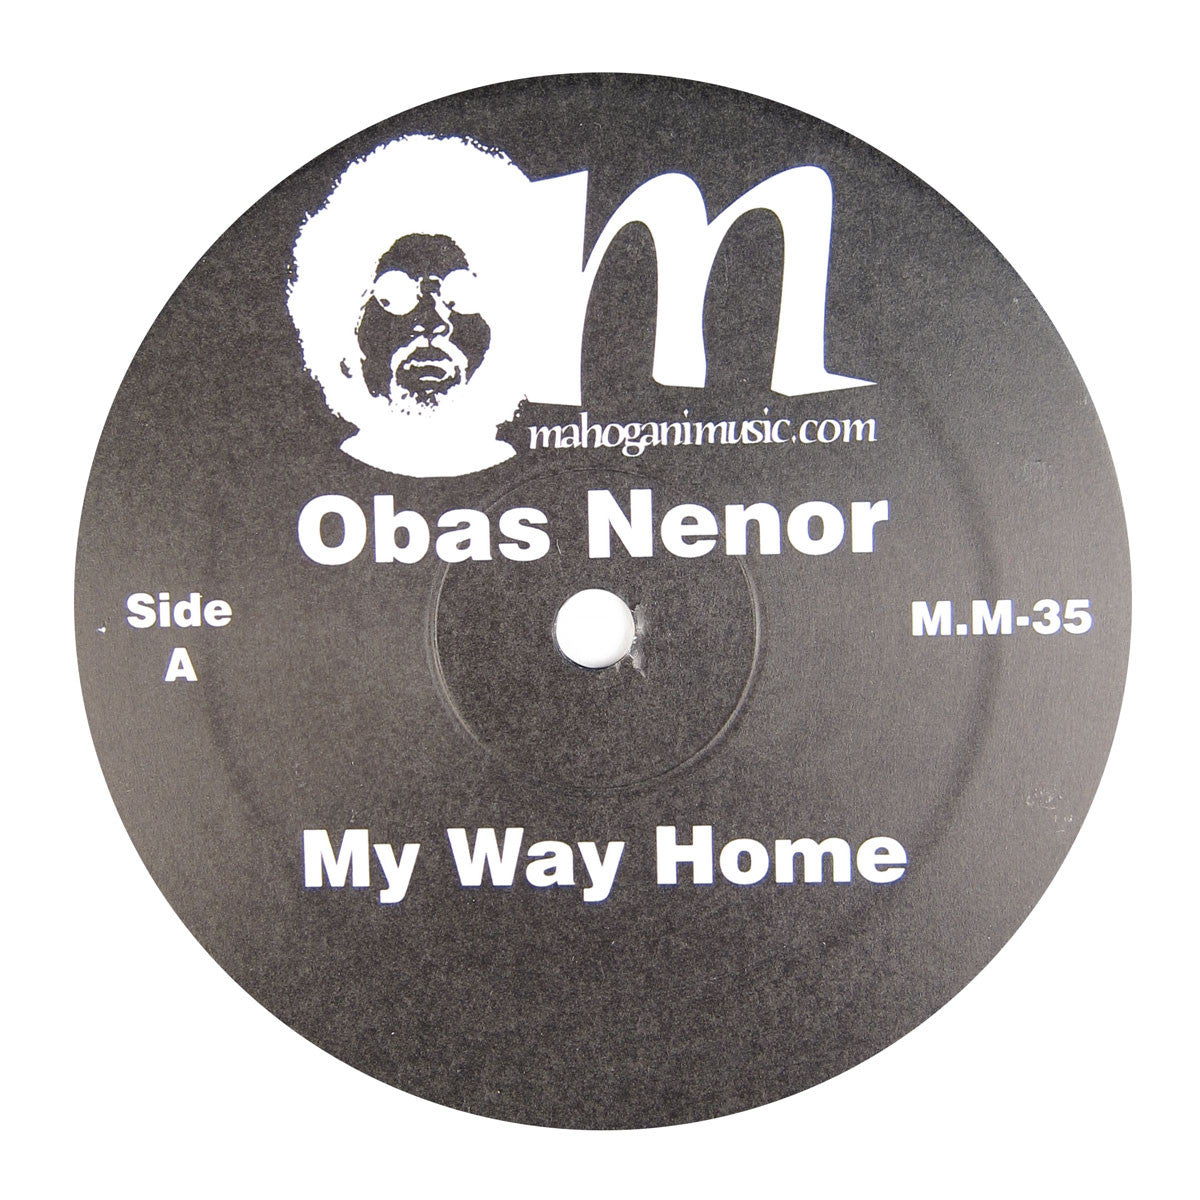 Obas Nenor: My Way Home Vinyl 12""